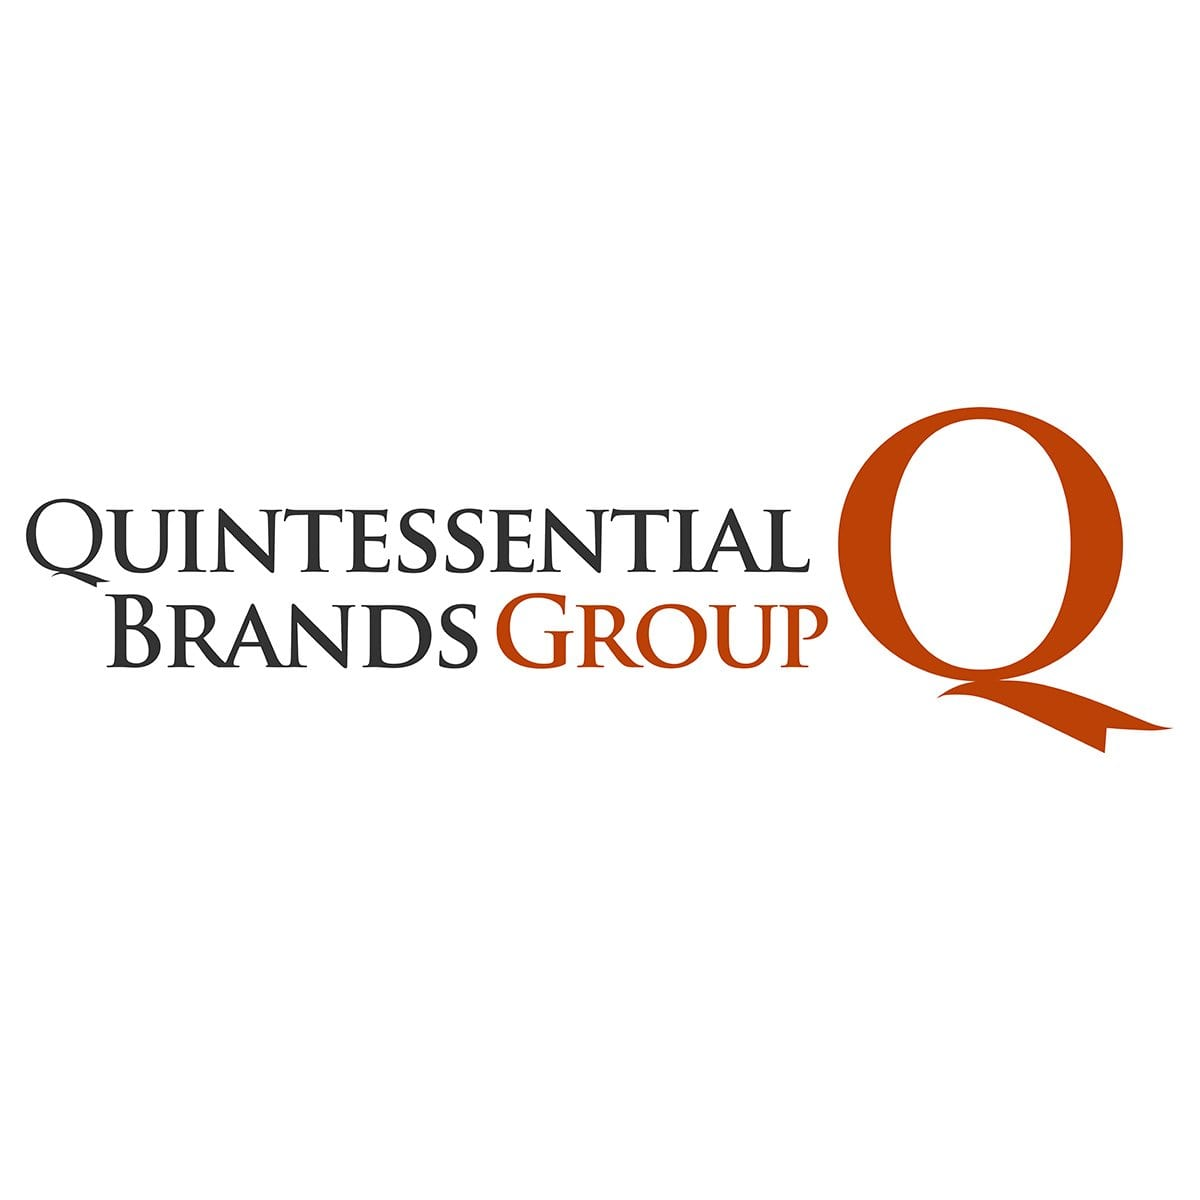 G&J Distillers, owned by Quintessential Brands Group